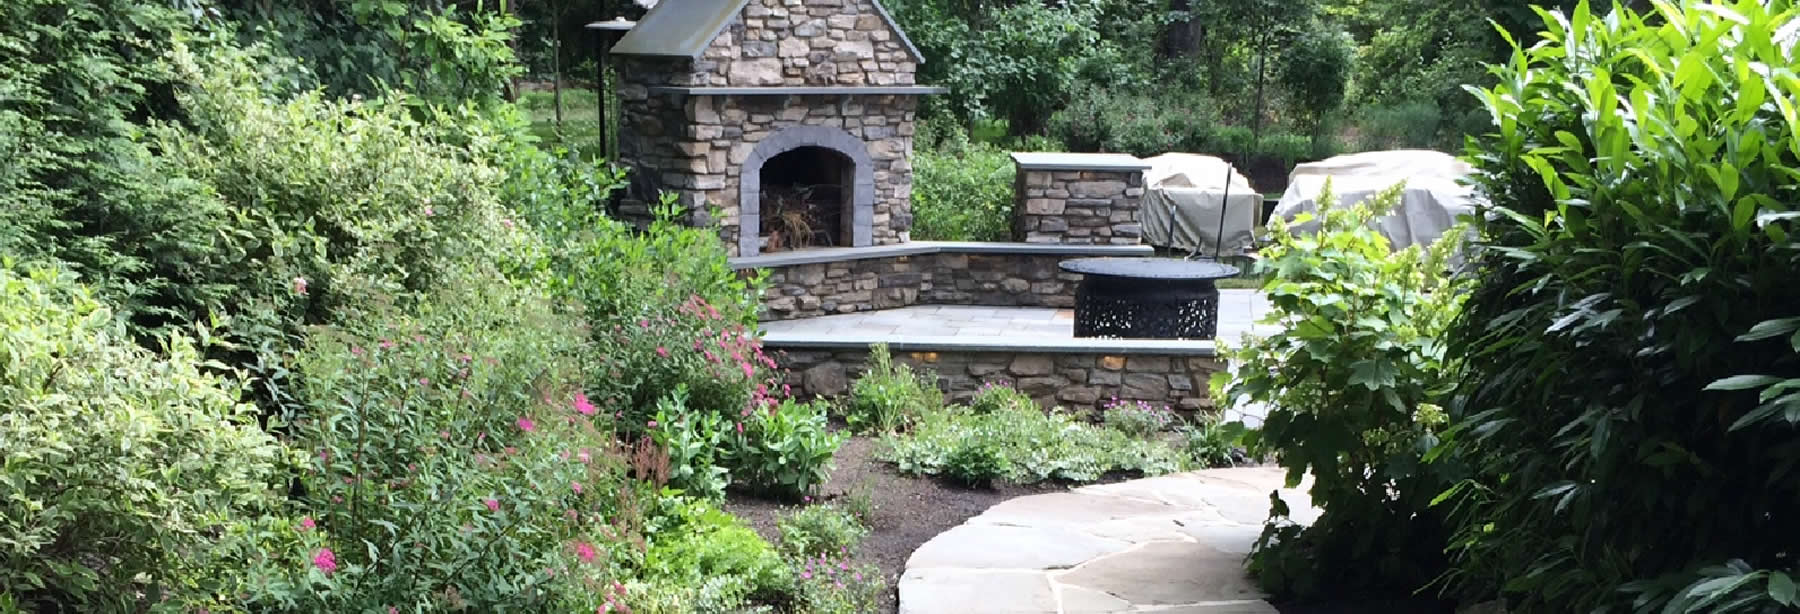 Top-notch Hardscape Creations